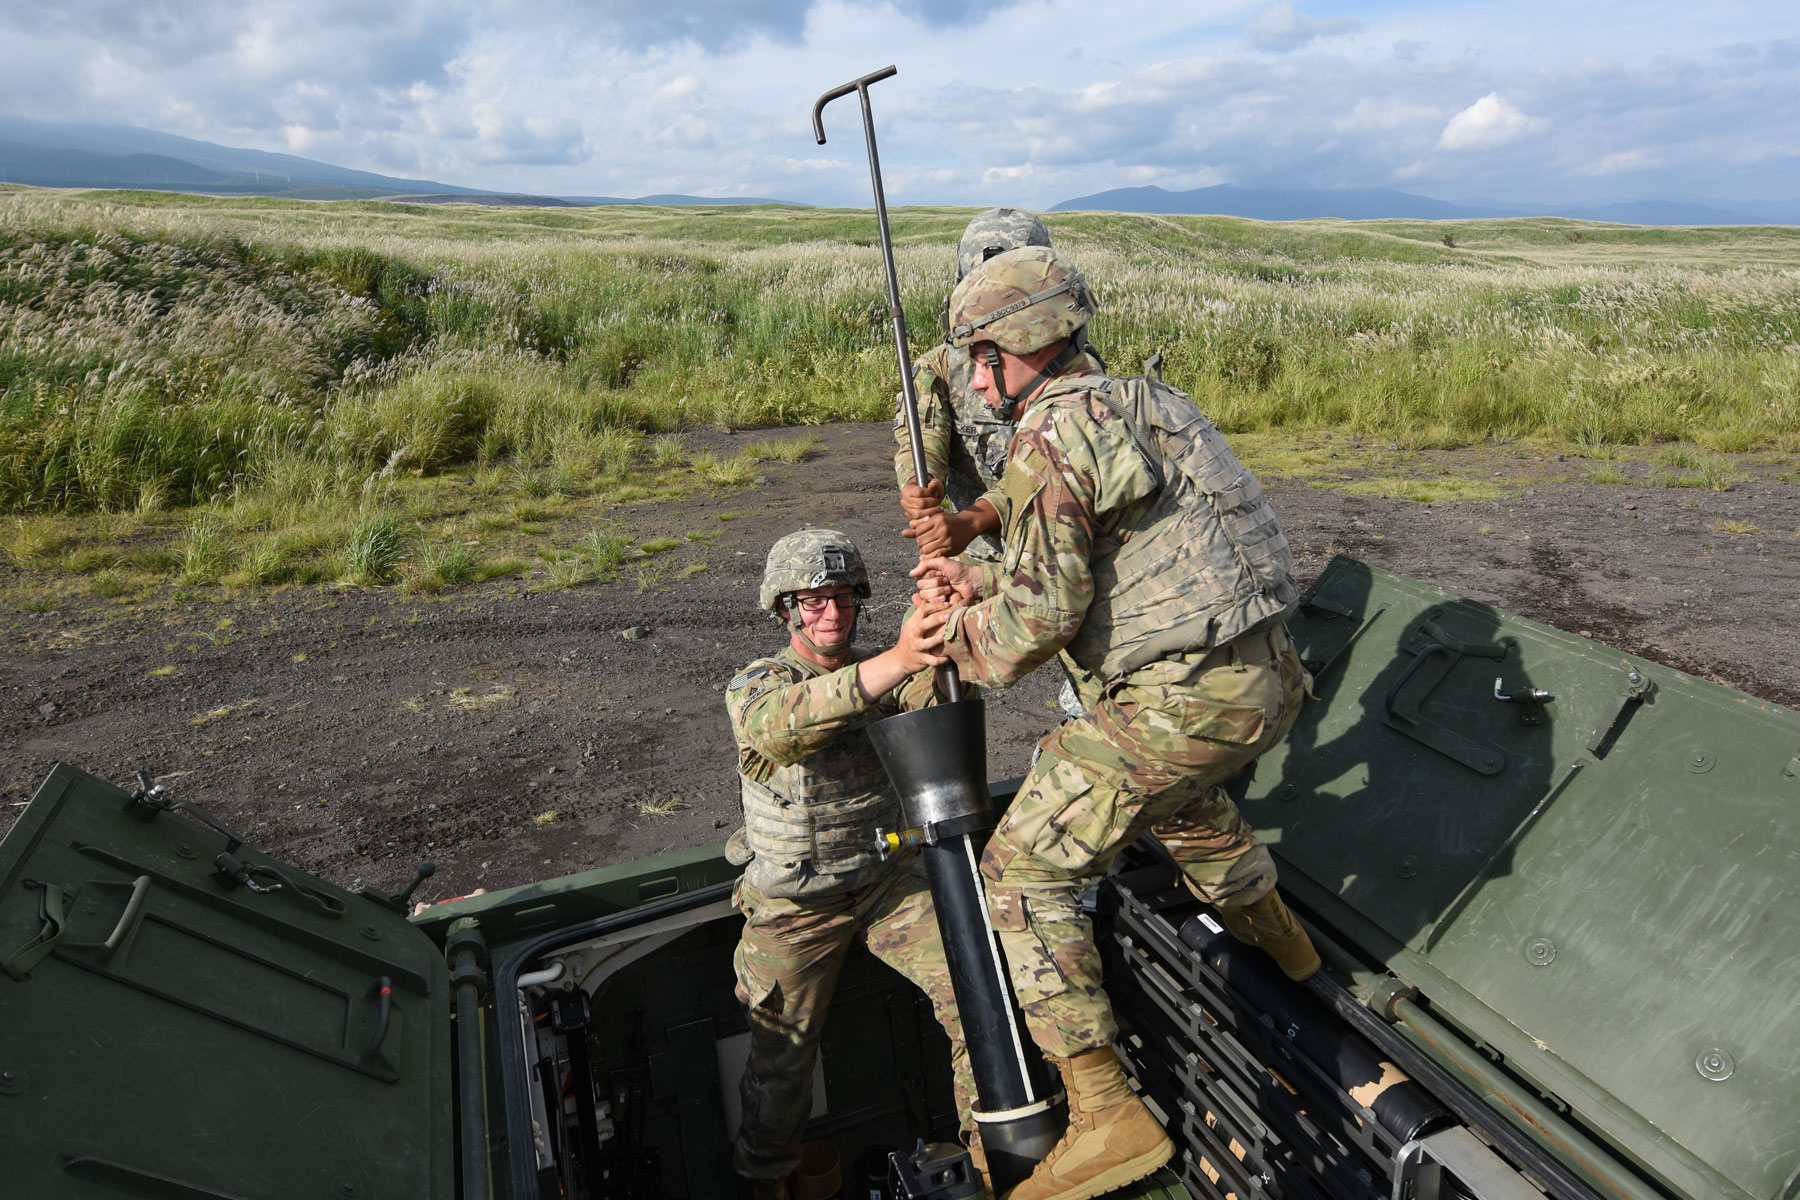 U.S. Army Soldiers assigned to Headquarters, Headquarters Company, 3rd Battalion, 21st Infantry Regiment, 1st Stryker Brigade Combat Team, 25th Infantry Division, clean a RMS6L 120mm mortar system on a M1129 Mortar Carrier between fire missions as part of exercise Orient Shield 2017 at Camp Fuji, Japan.